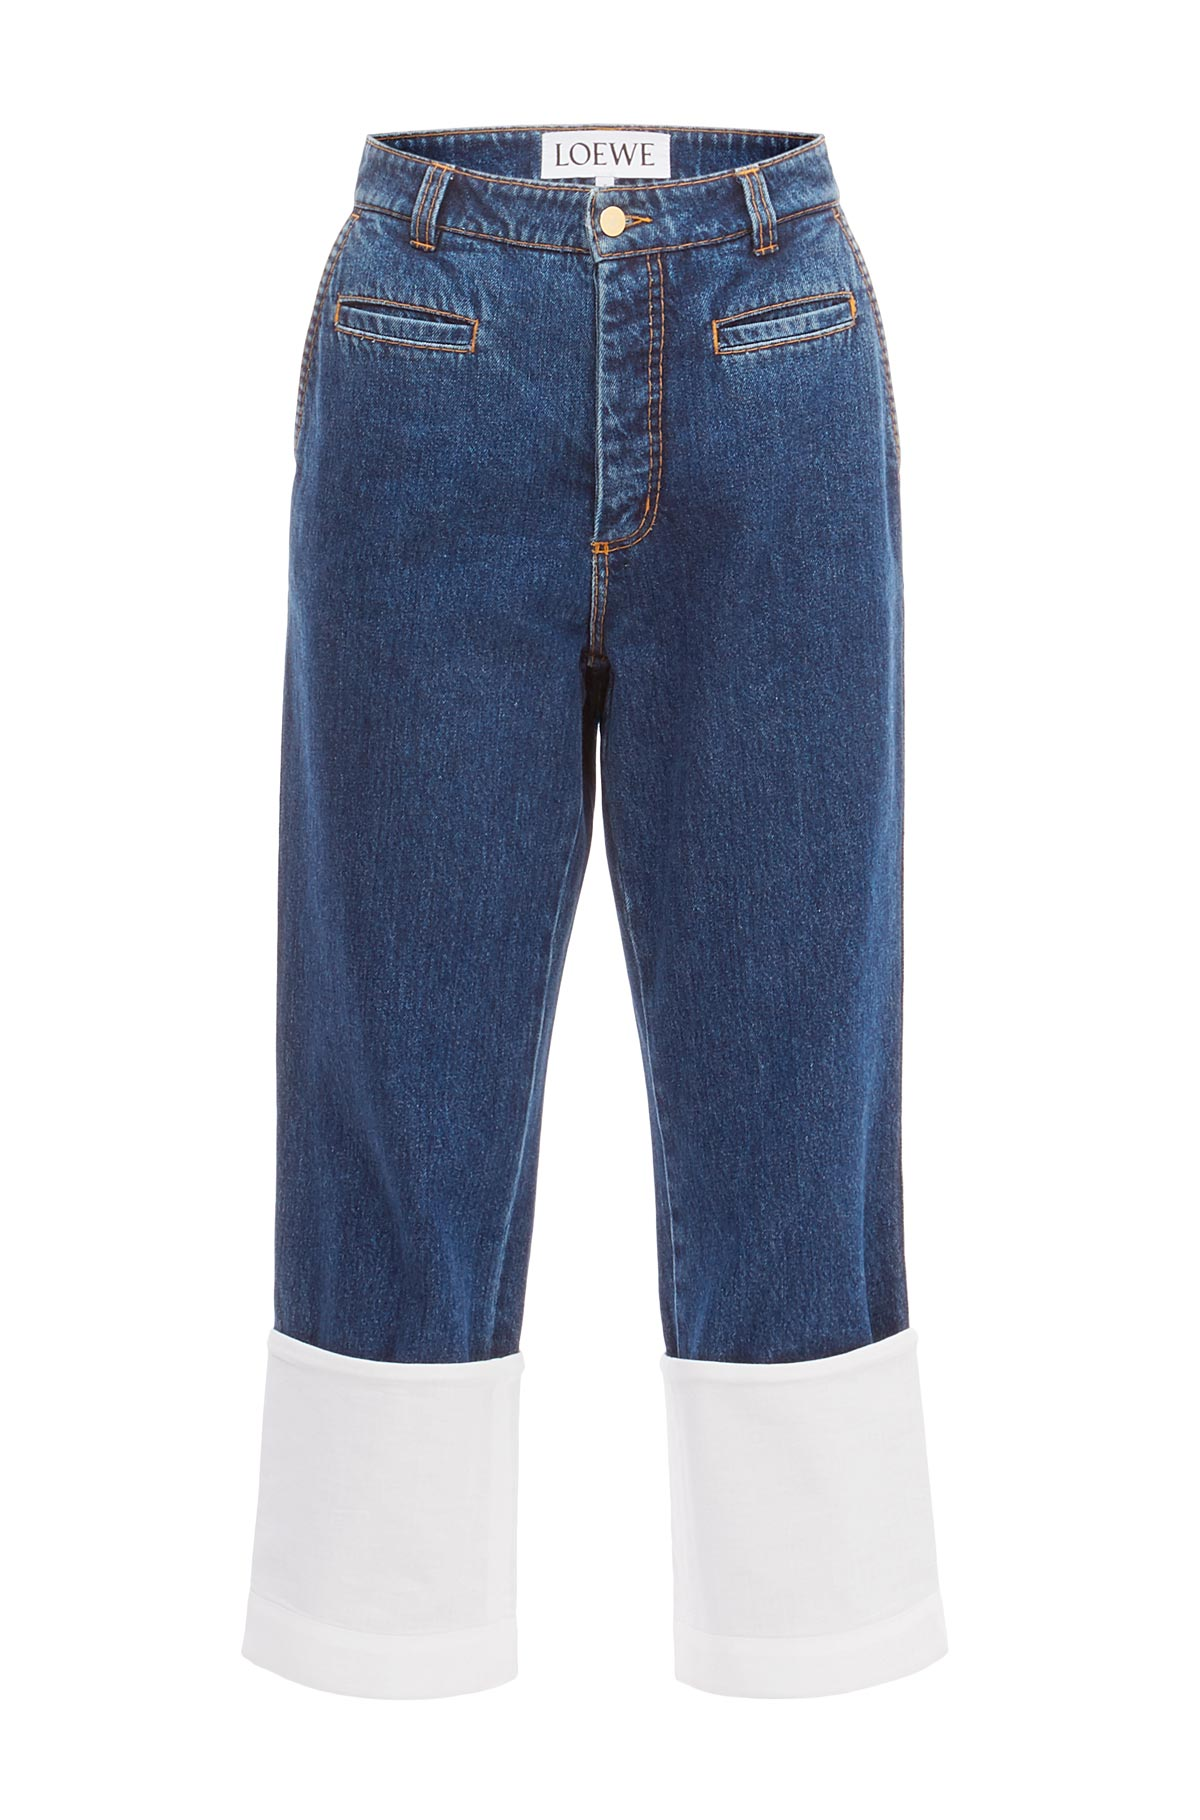 LOEWE Fisherman Contrast Stitching Blue Denim front